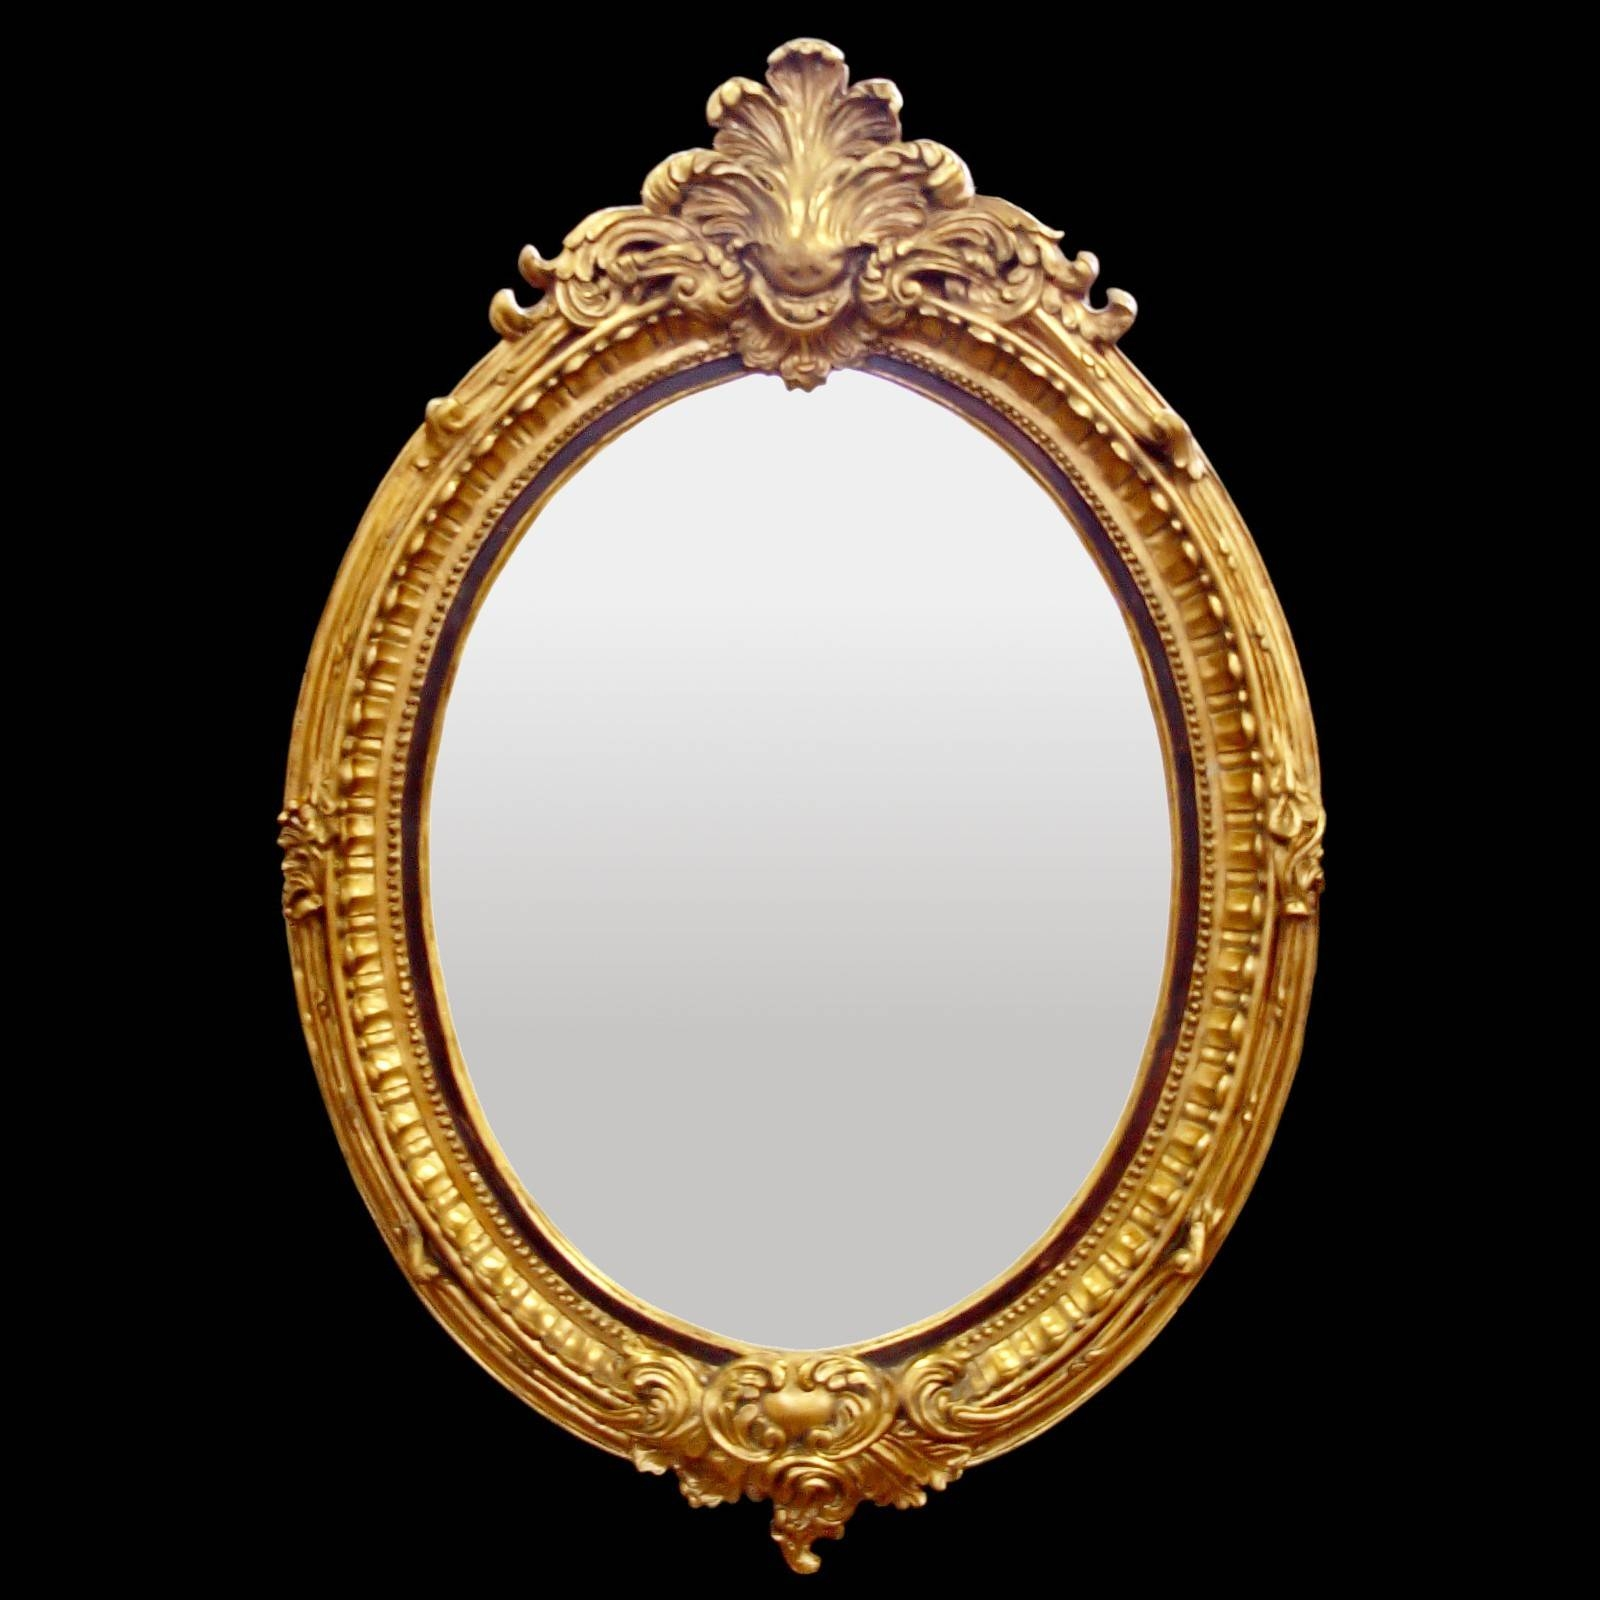 Baroque Hall Mirror Oval Wall Mirror Gold Color Red Leaf Motif in Baroque Style Mirrors (Image 5 of 25)